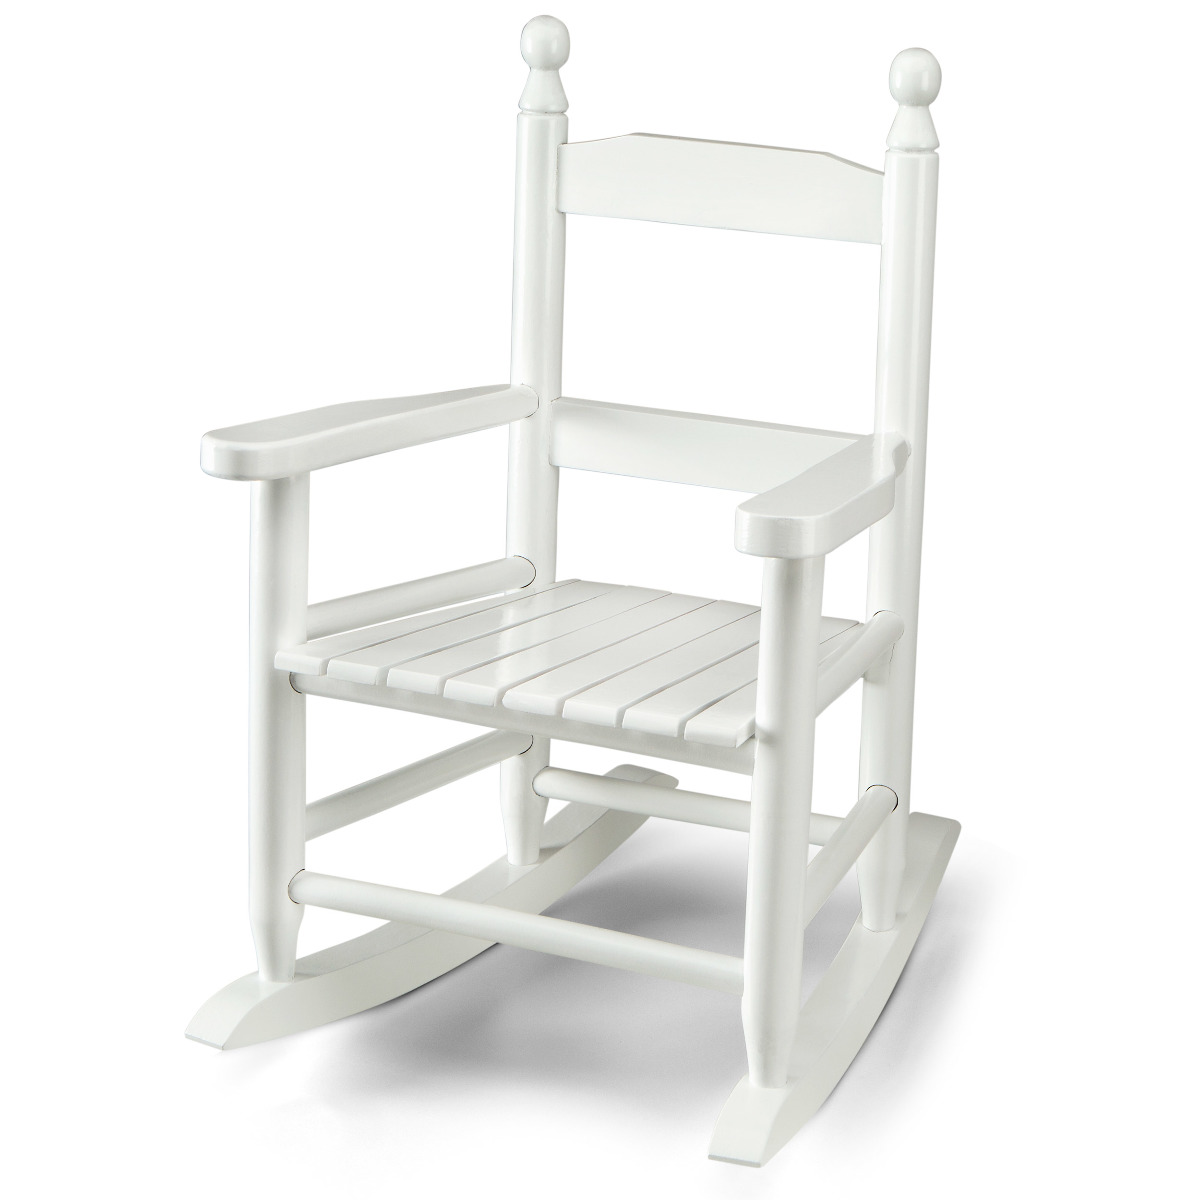 Wooden Rocking Chair for Kids White  eBay